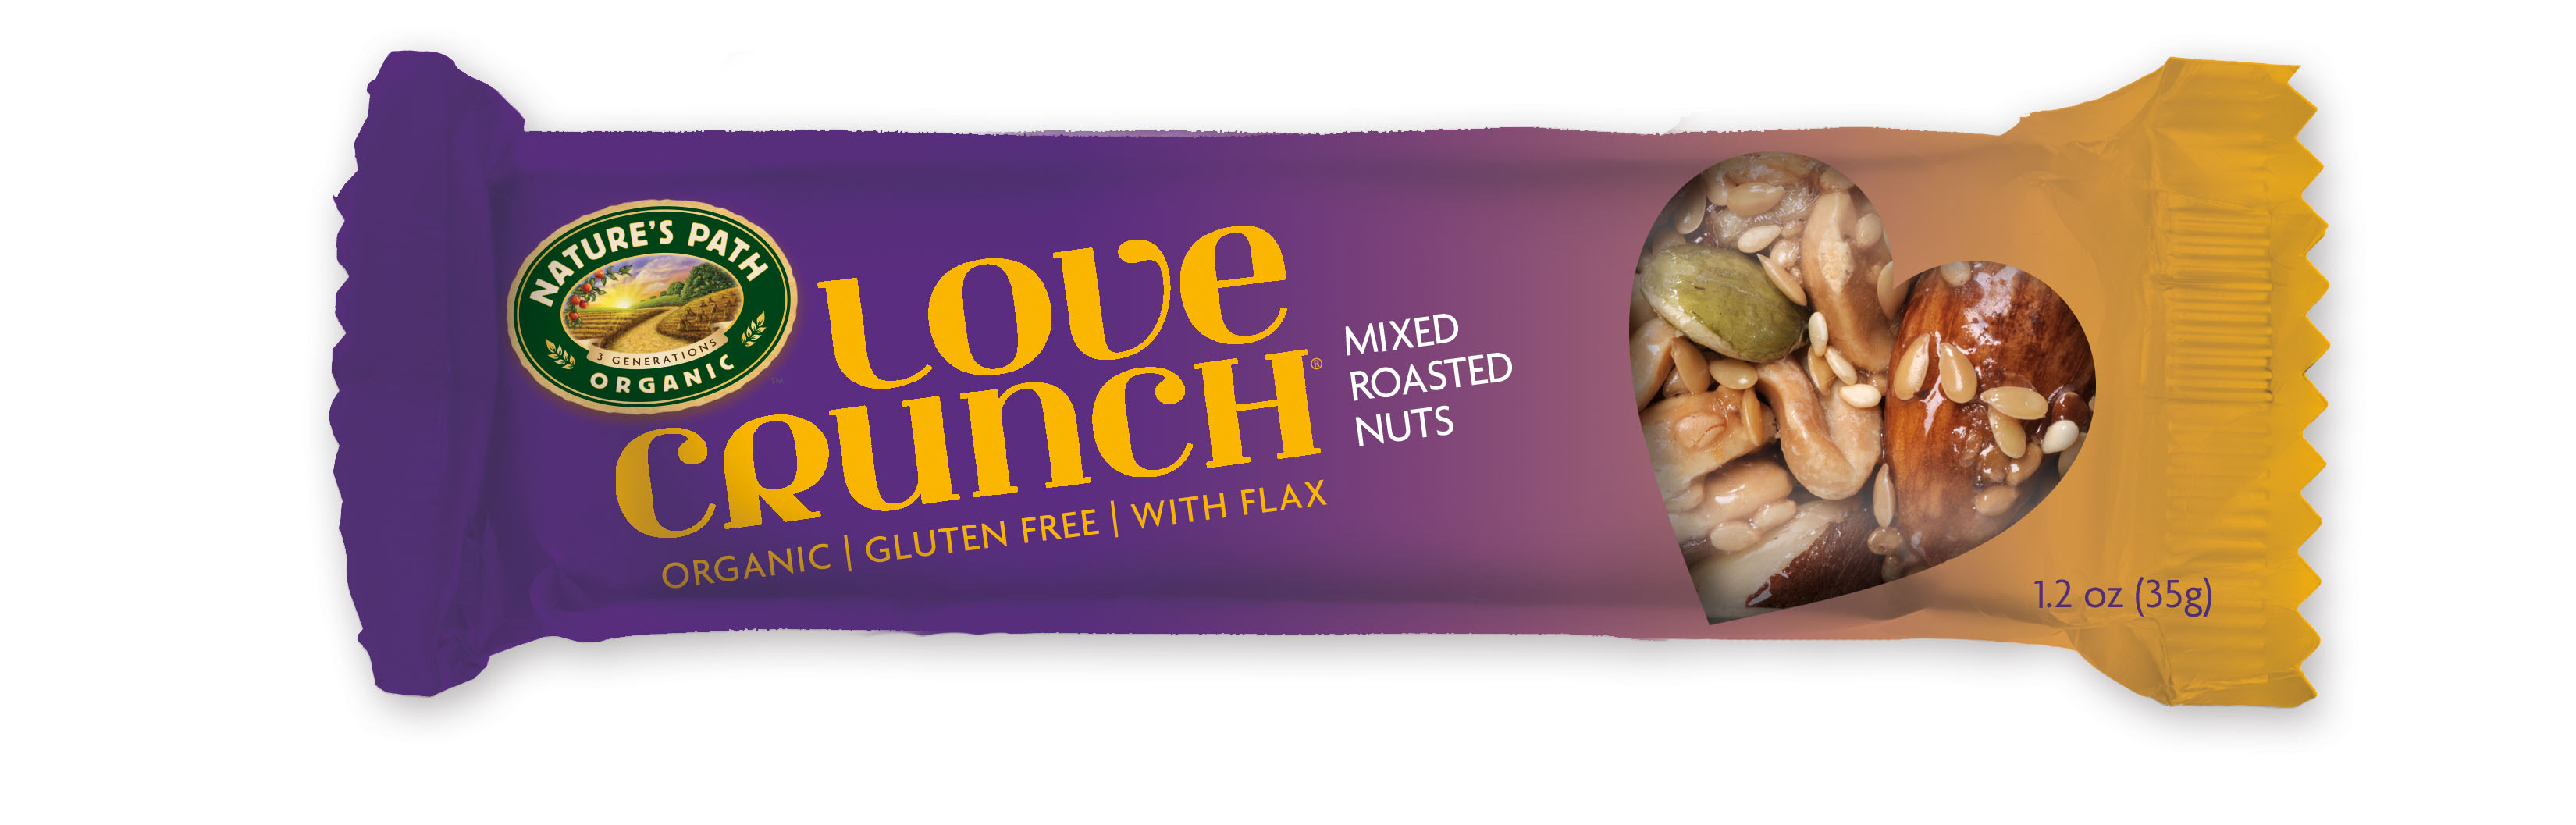 Nature's Path: Love Crunch Bar